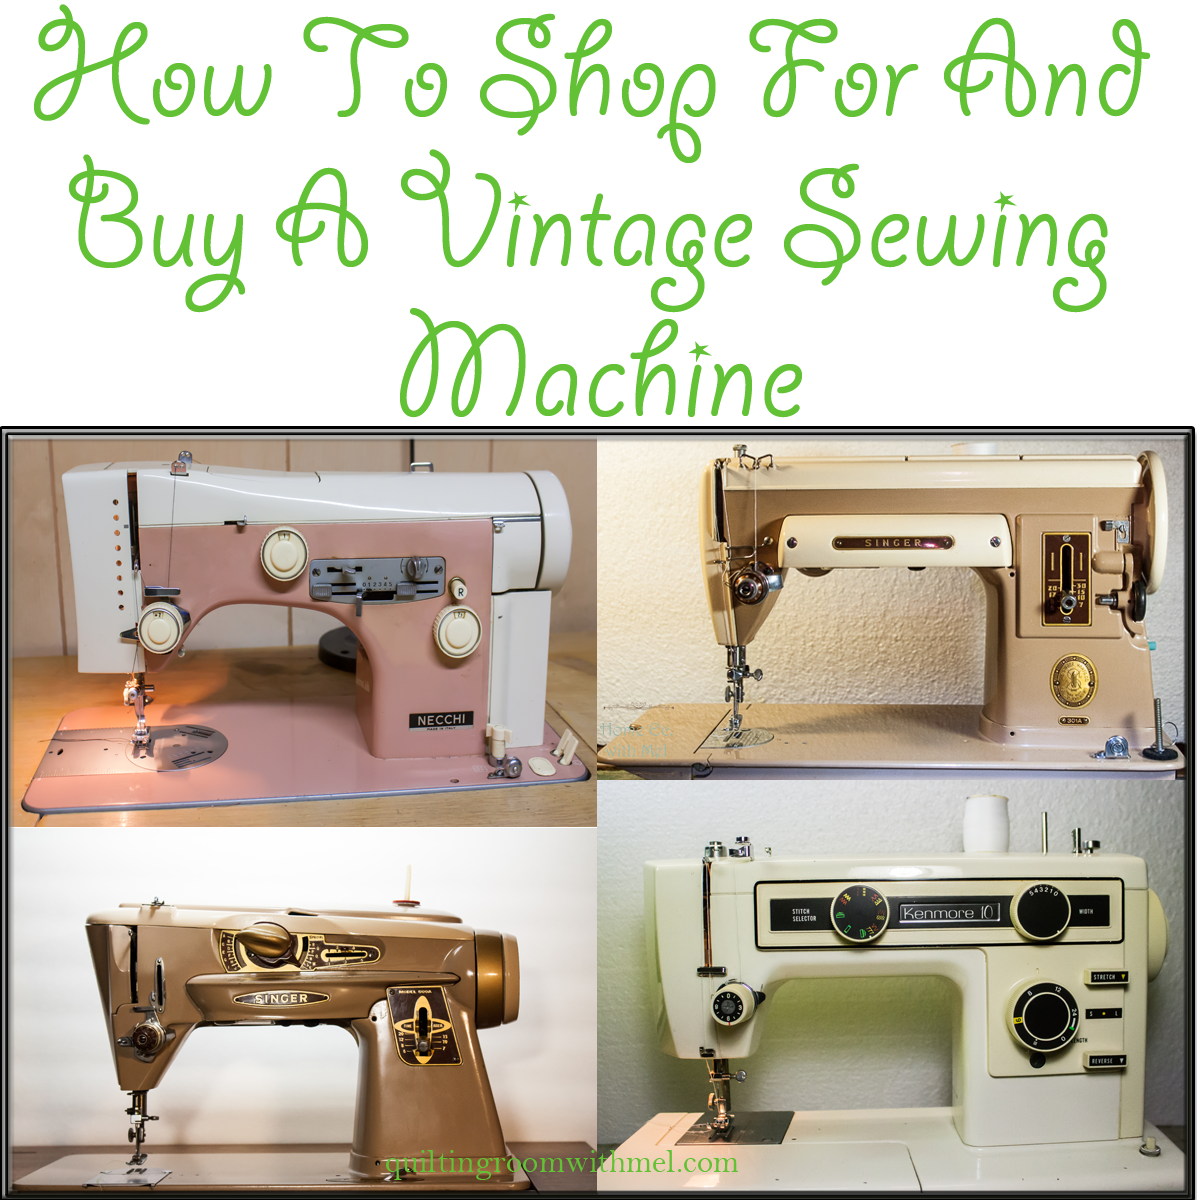 How To Shop For and Buy A Vintage Sewing Machine - The Quilting ... : buying a sewing machine for quilting - Adamdwight.com